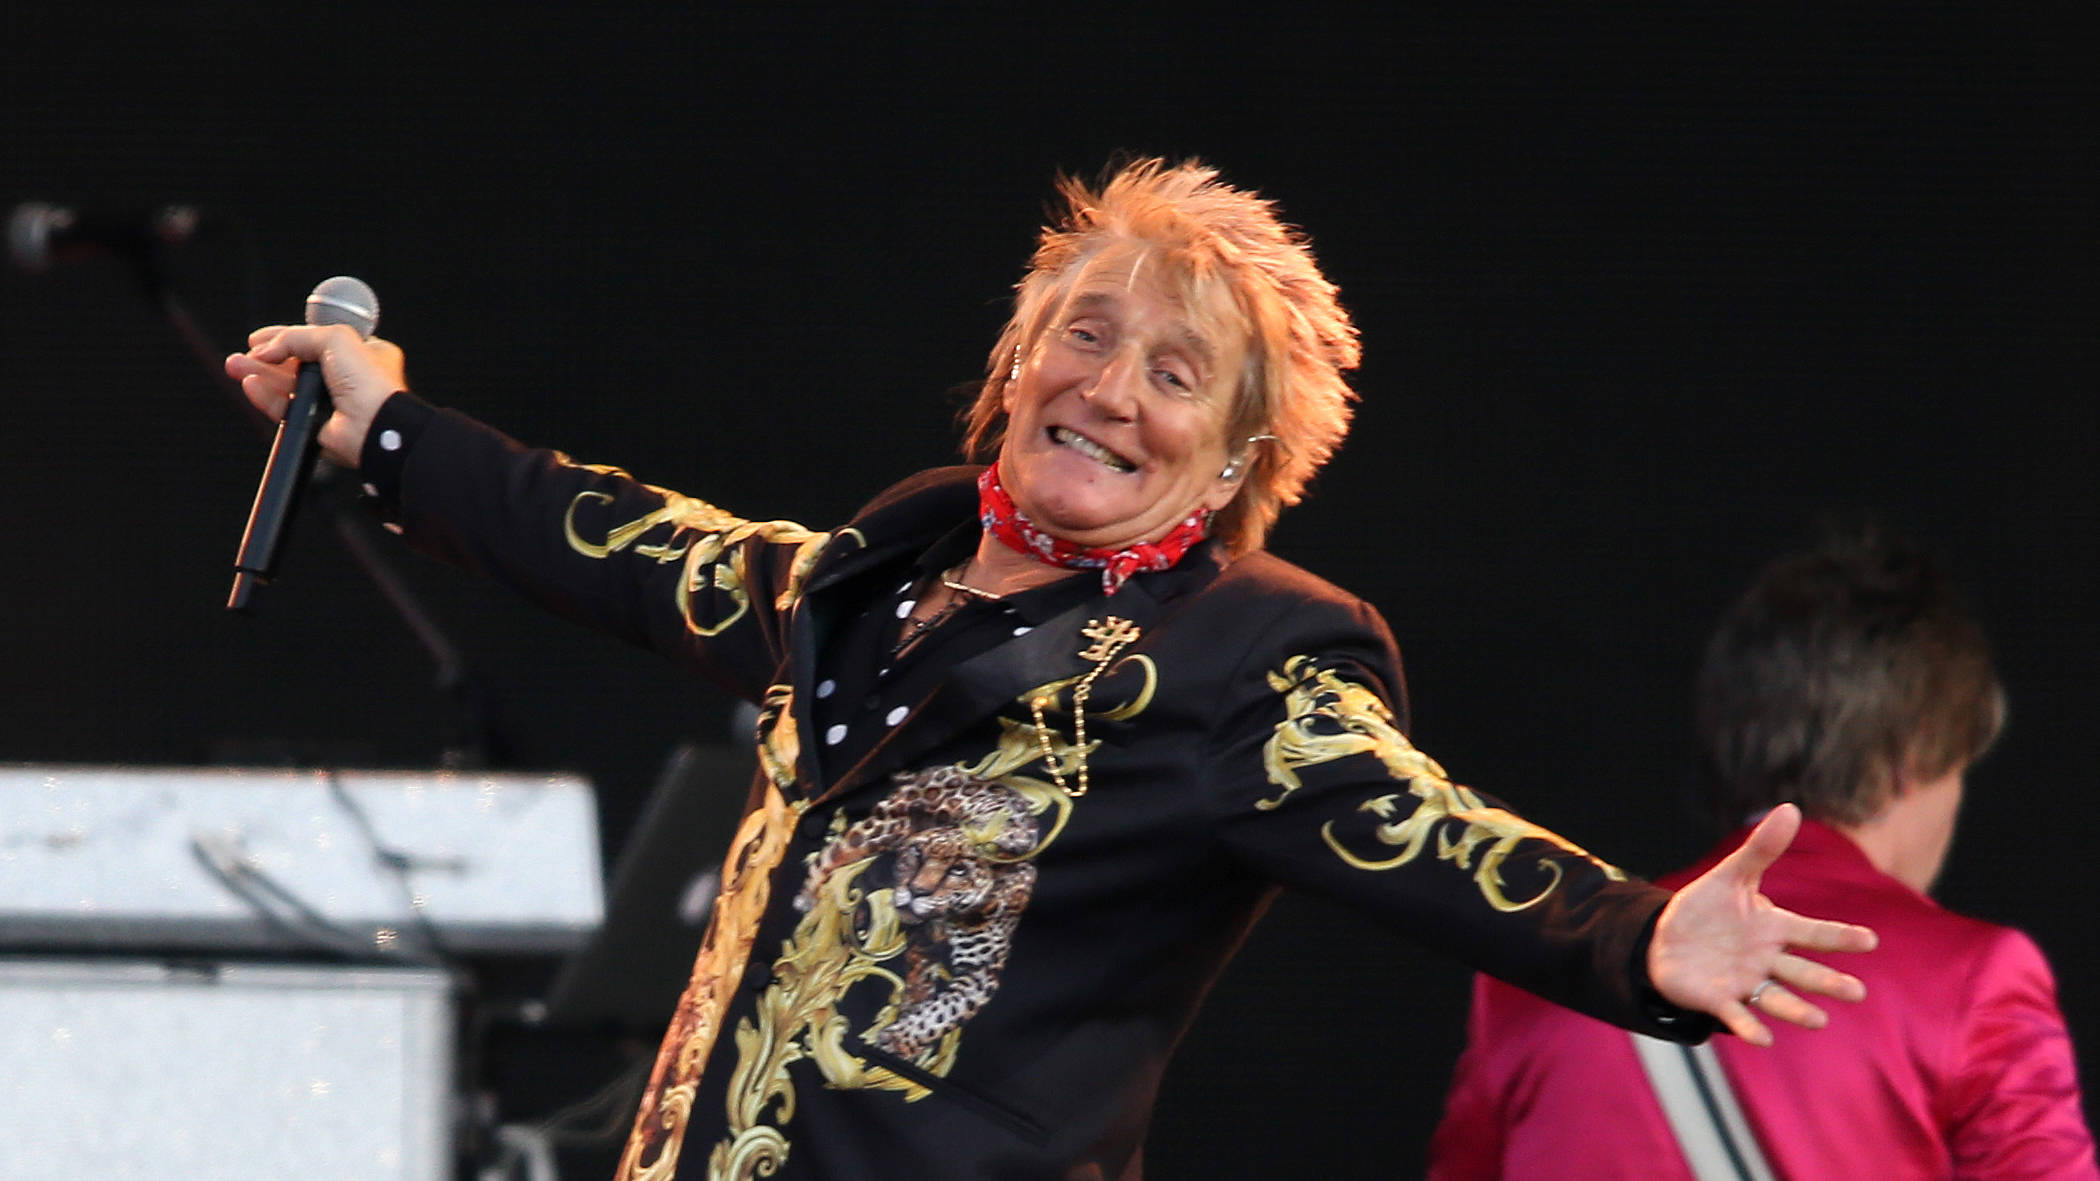 Rod Stewart reveals how he wrote 'Maggie May' about losing his virginity at 16